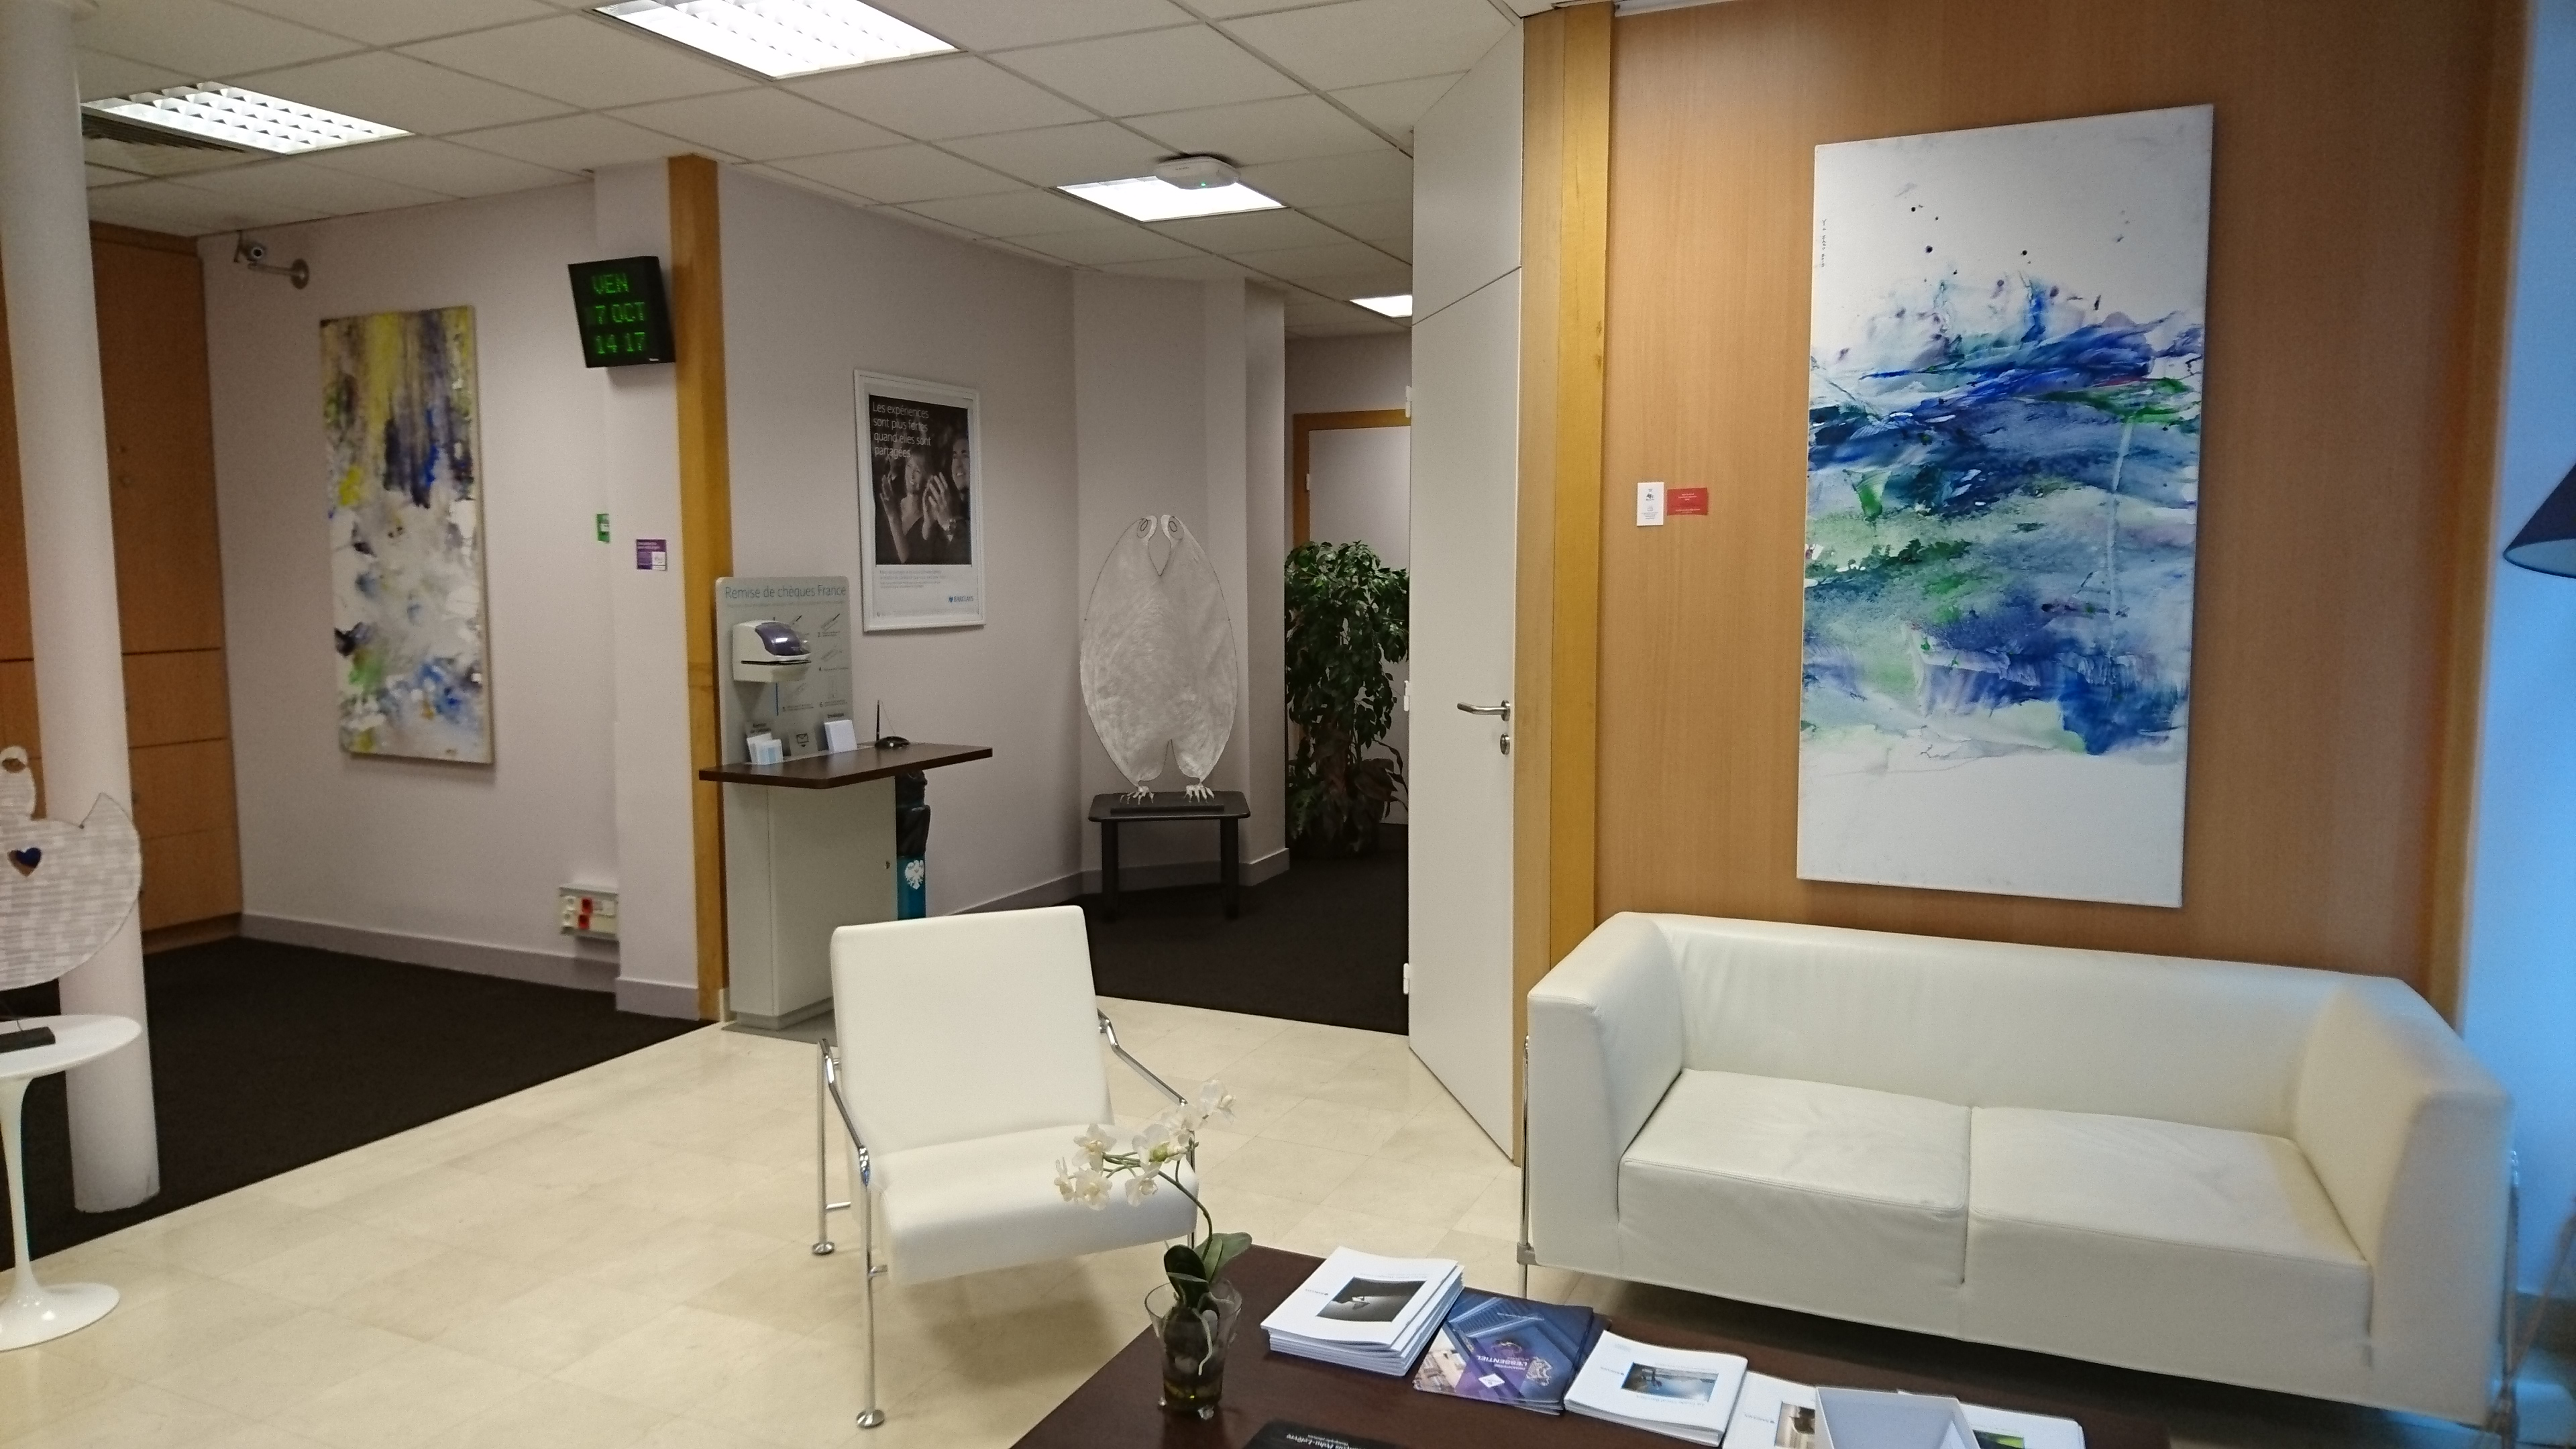 Exhibition in Barclays Bank - Levallois Perret, 2016